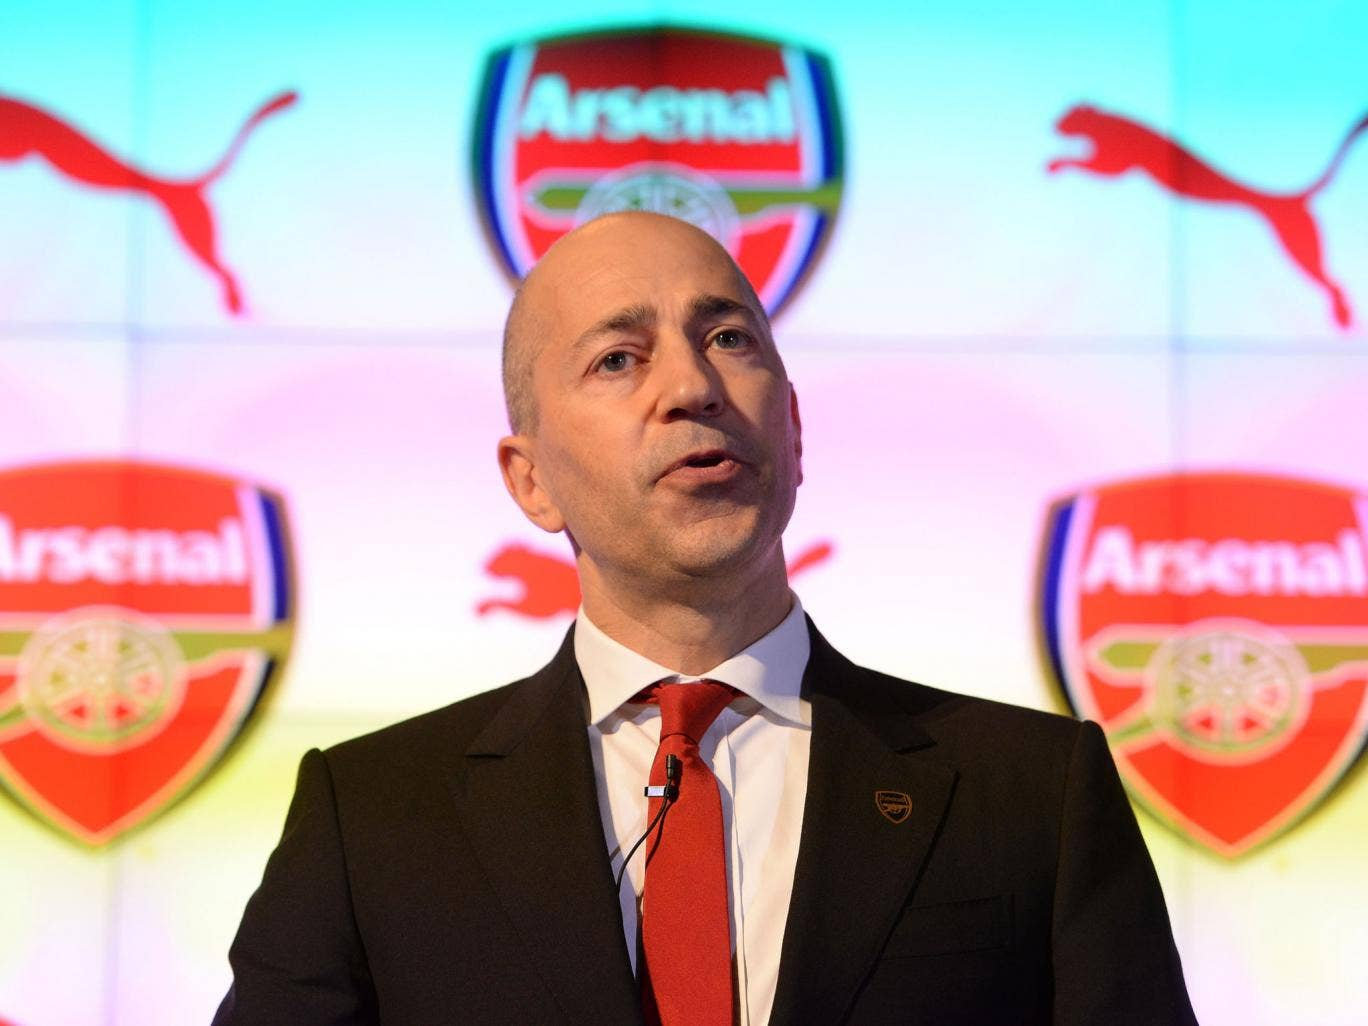 Ivan Gazidis the CEO of Arsenal